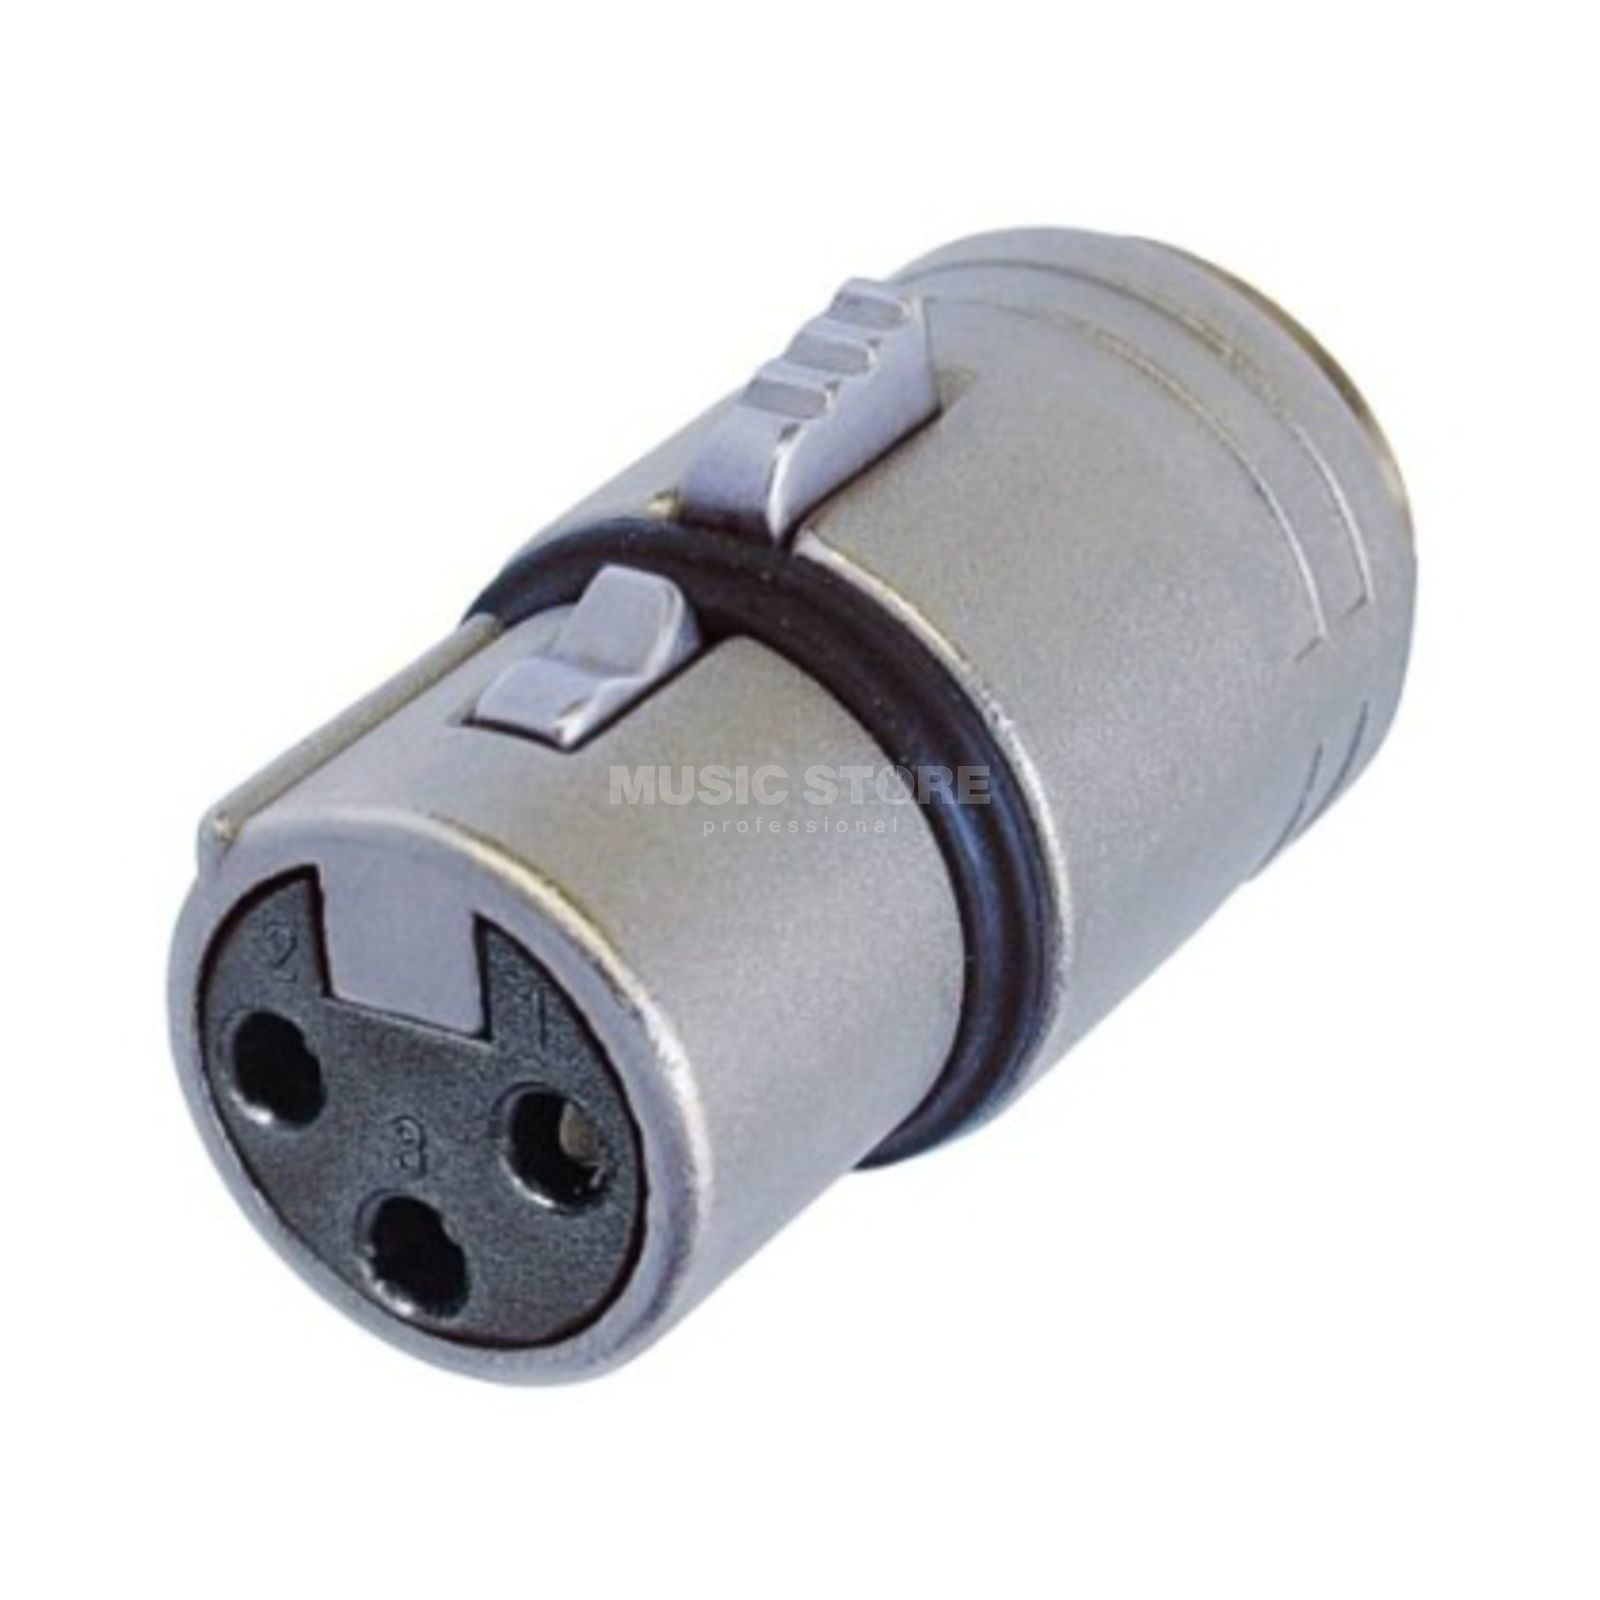 Neutrik NM3FXI female XLR housing Produktbillede